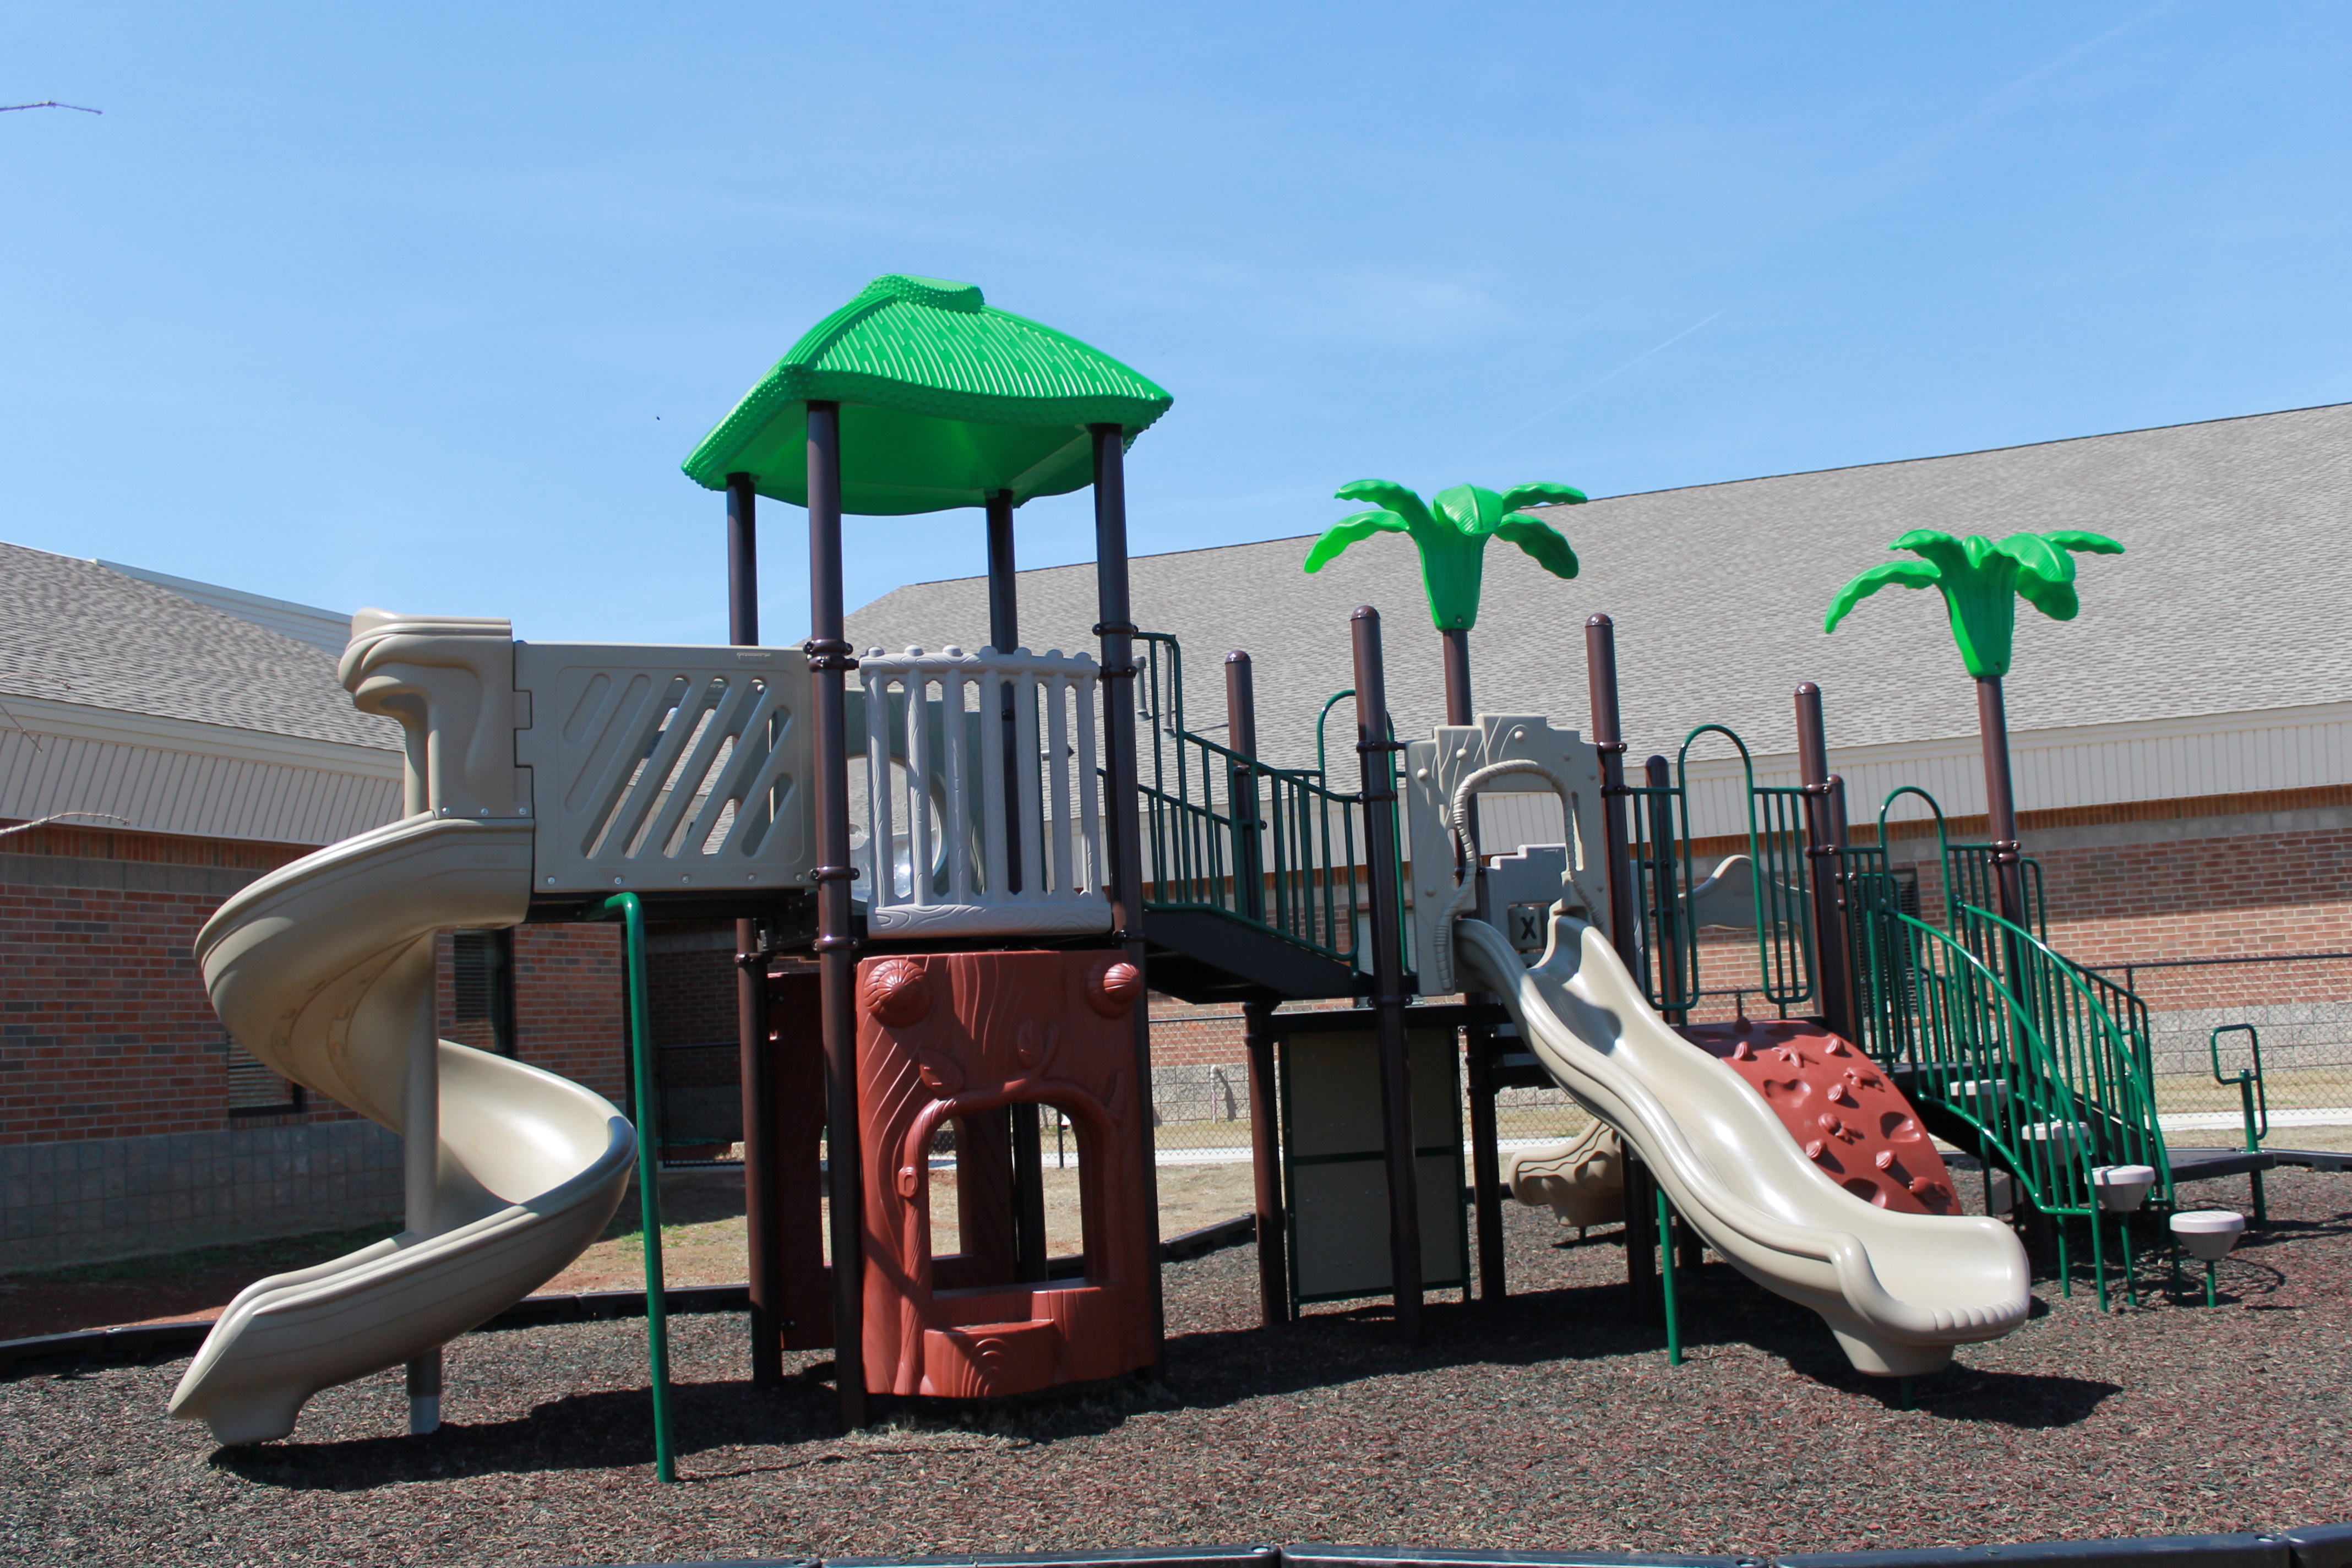 Noahs Park and Playgrounds, LLC image 17